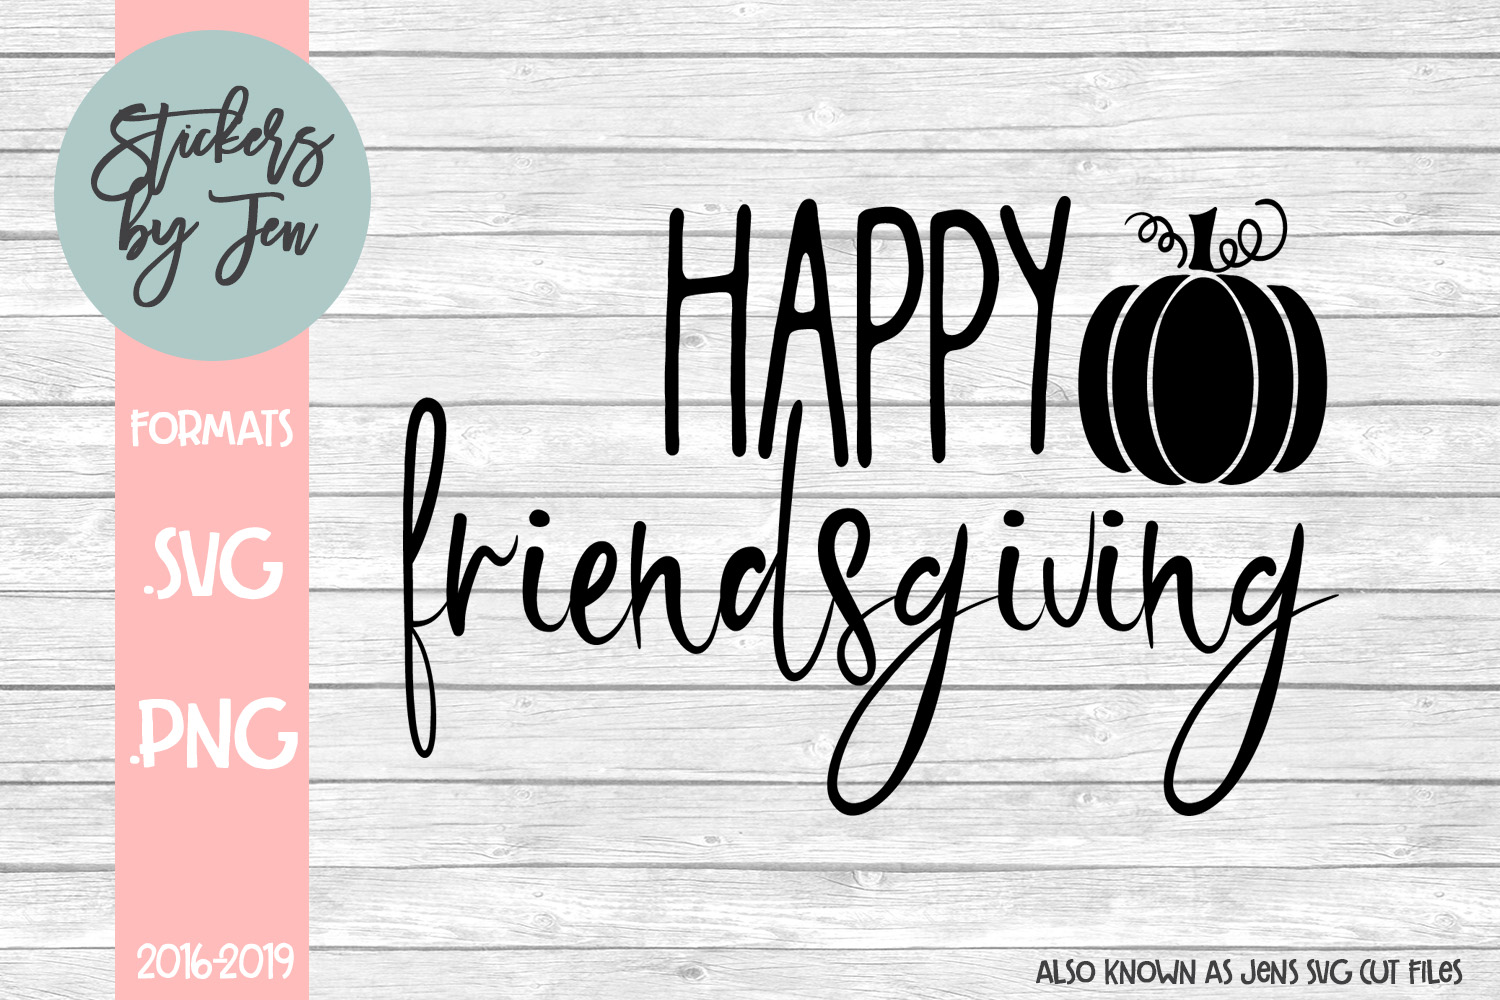 Download Free Happy Friendsgiving Graphic By Stickers By Jennifer Creative for Cricut Explore, Silhouette and other cutting machines.